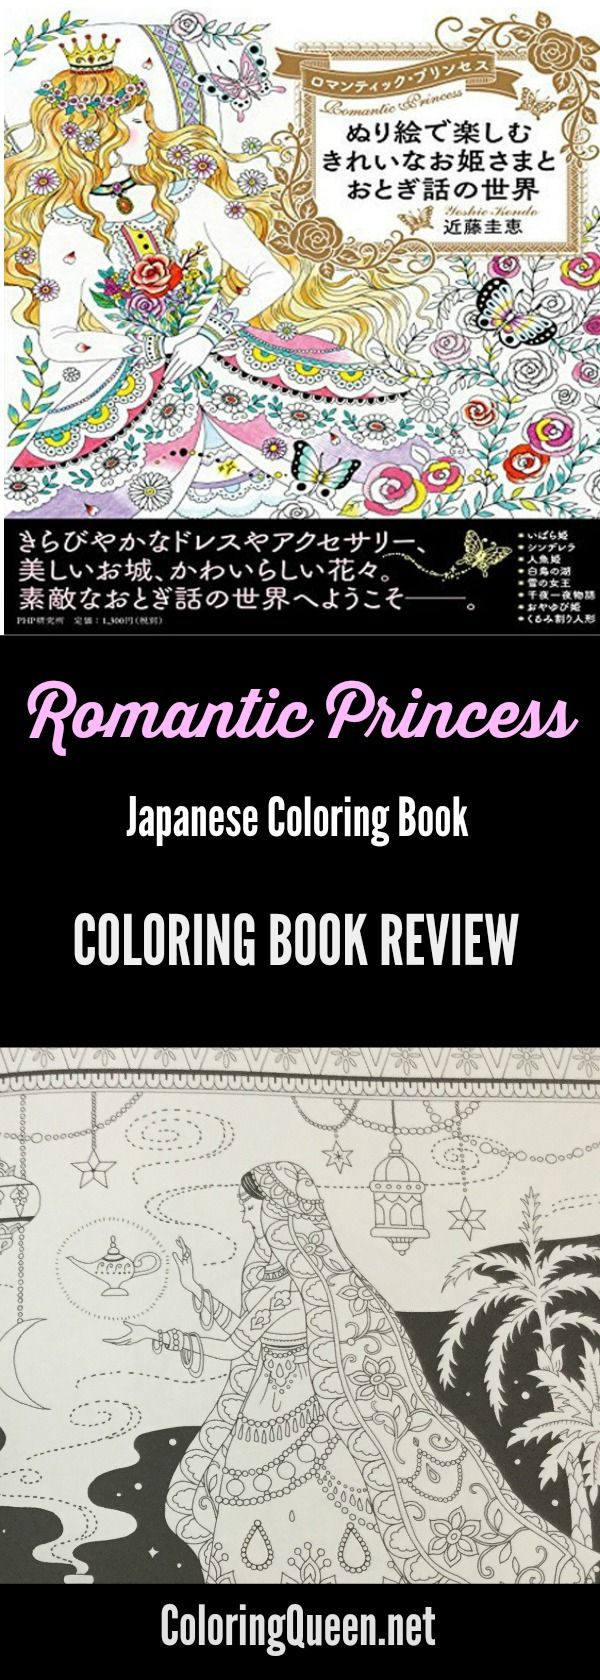 romantic princess coloring book review - Where To Buy Coloring Books